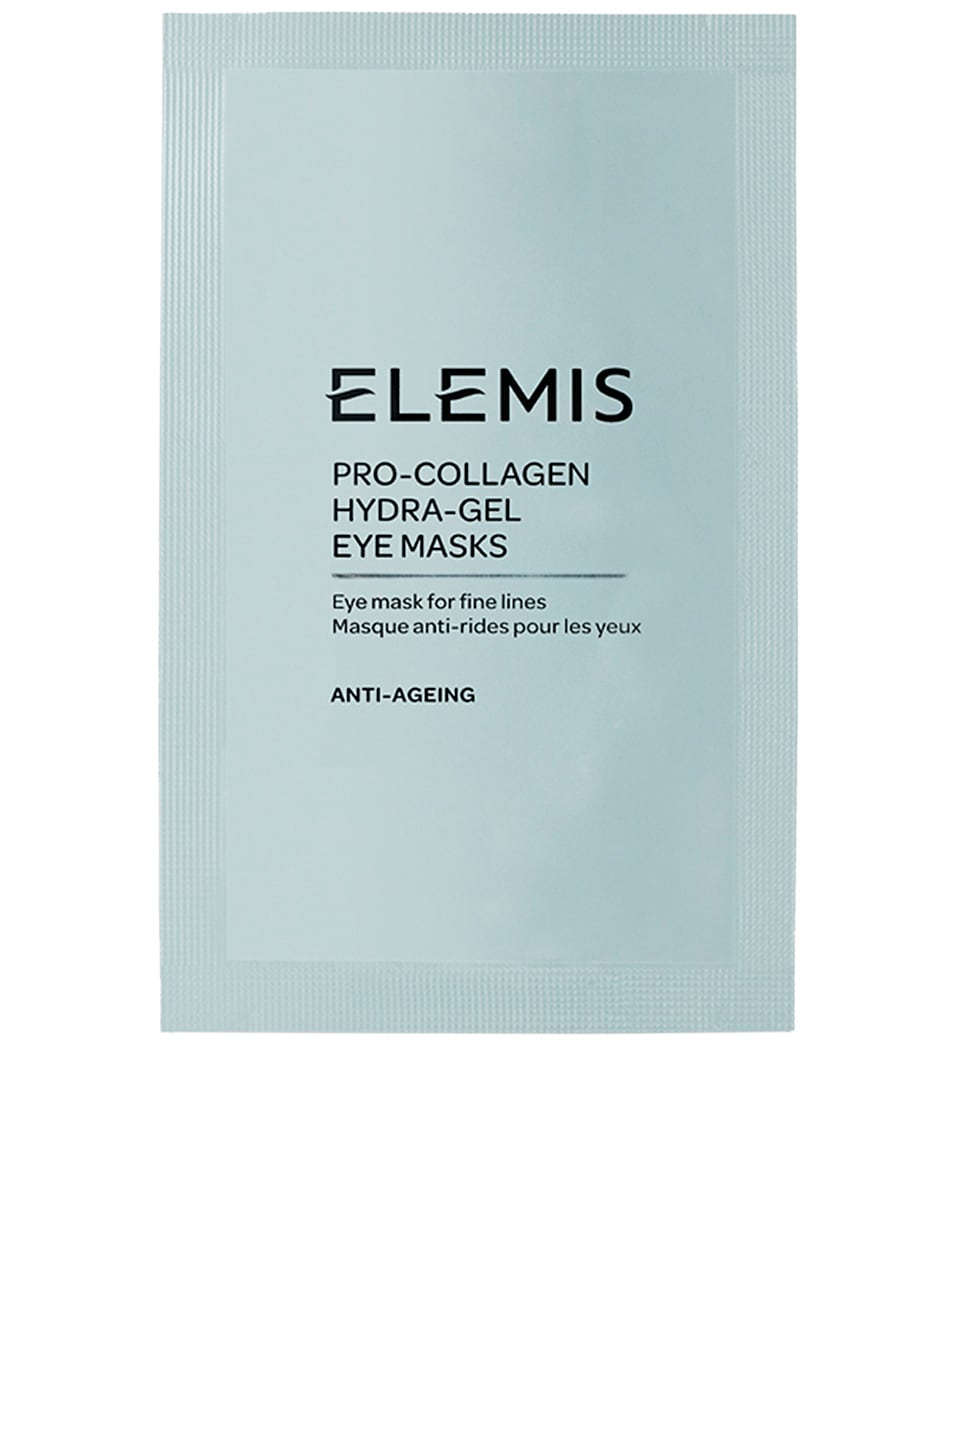 ELEMIS Pro-Collagen Hydra-Gel Eye Masks 6 Pack